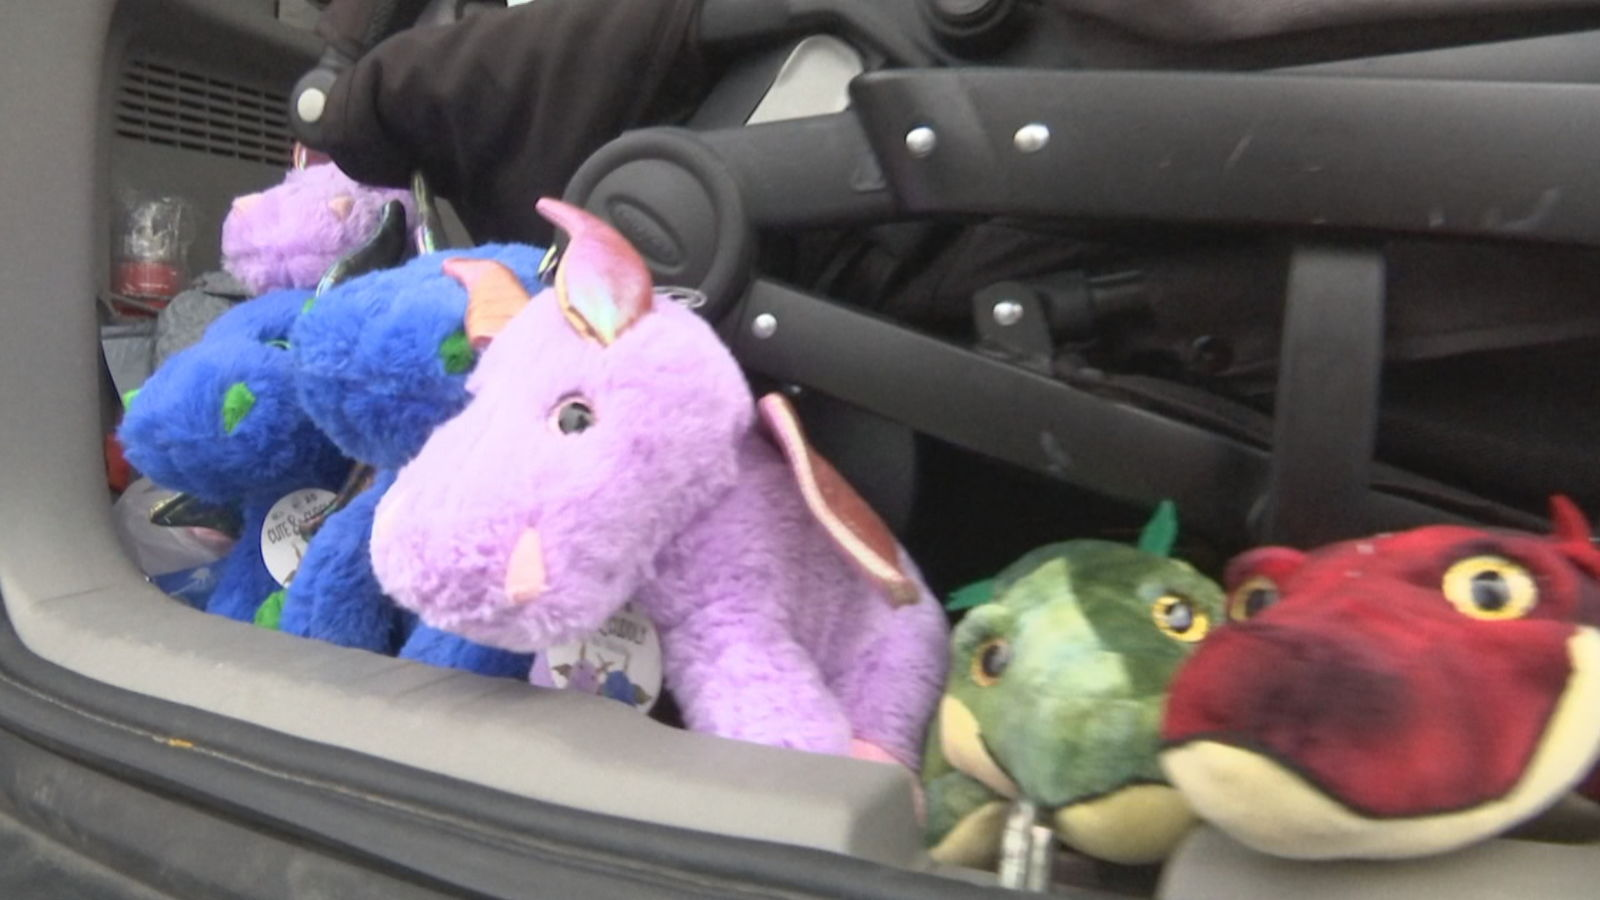 Liam Soares, 5, is adding stuffed animals to patrol cars in Fall River hoping it'll help kids in a scary situation. (WJAR)